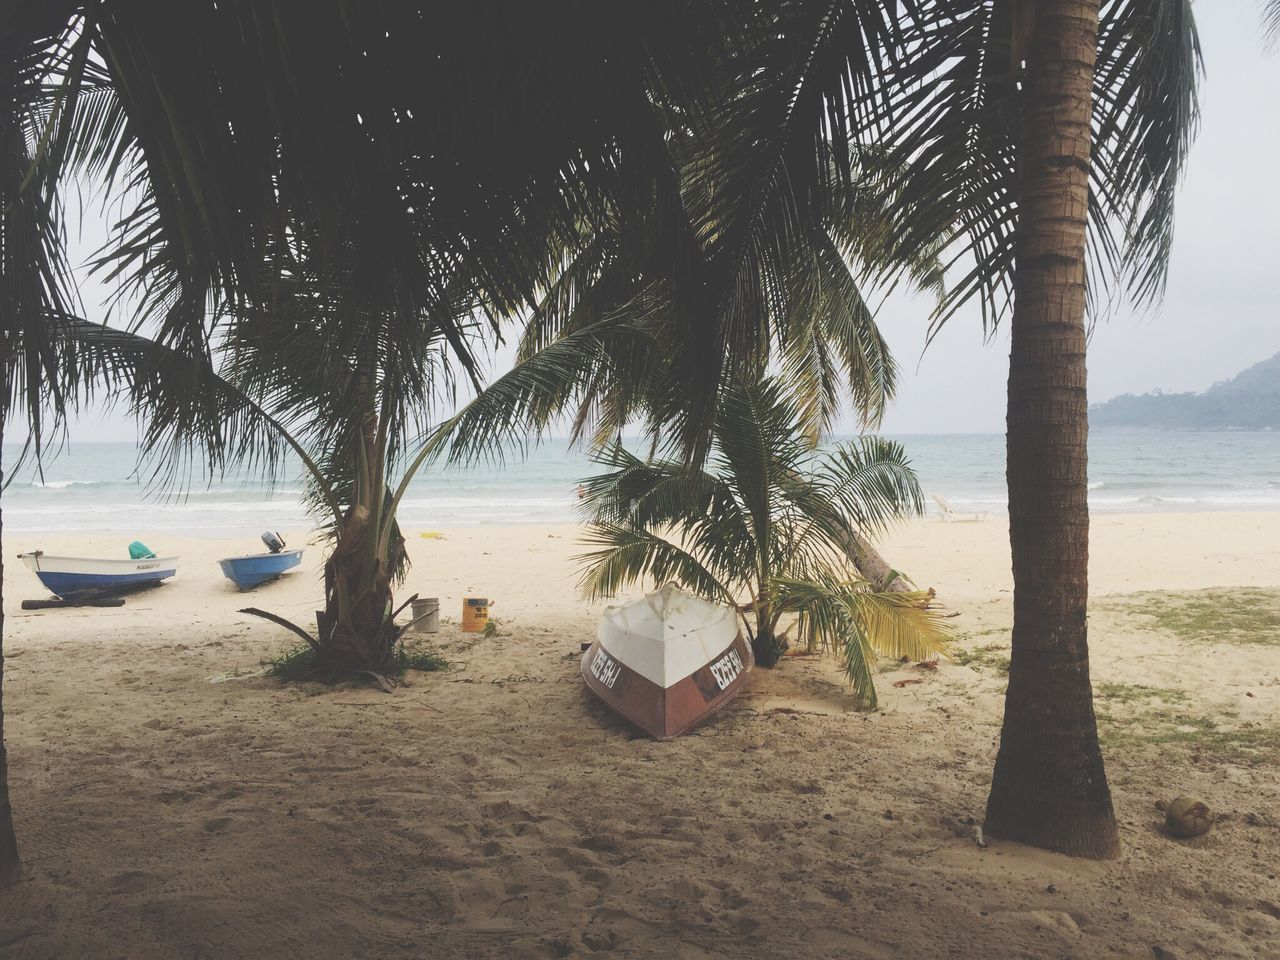 Paradise Beach Paradise Tropical Weather Juara Beach Tropical Island Tioman Tropical Paradise Nature At Its Best Travel Destinations Lost Beach Paradise Island Boat Places To See Before You Die Beachphotography Travel Photography Palm